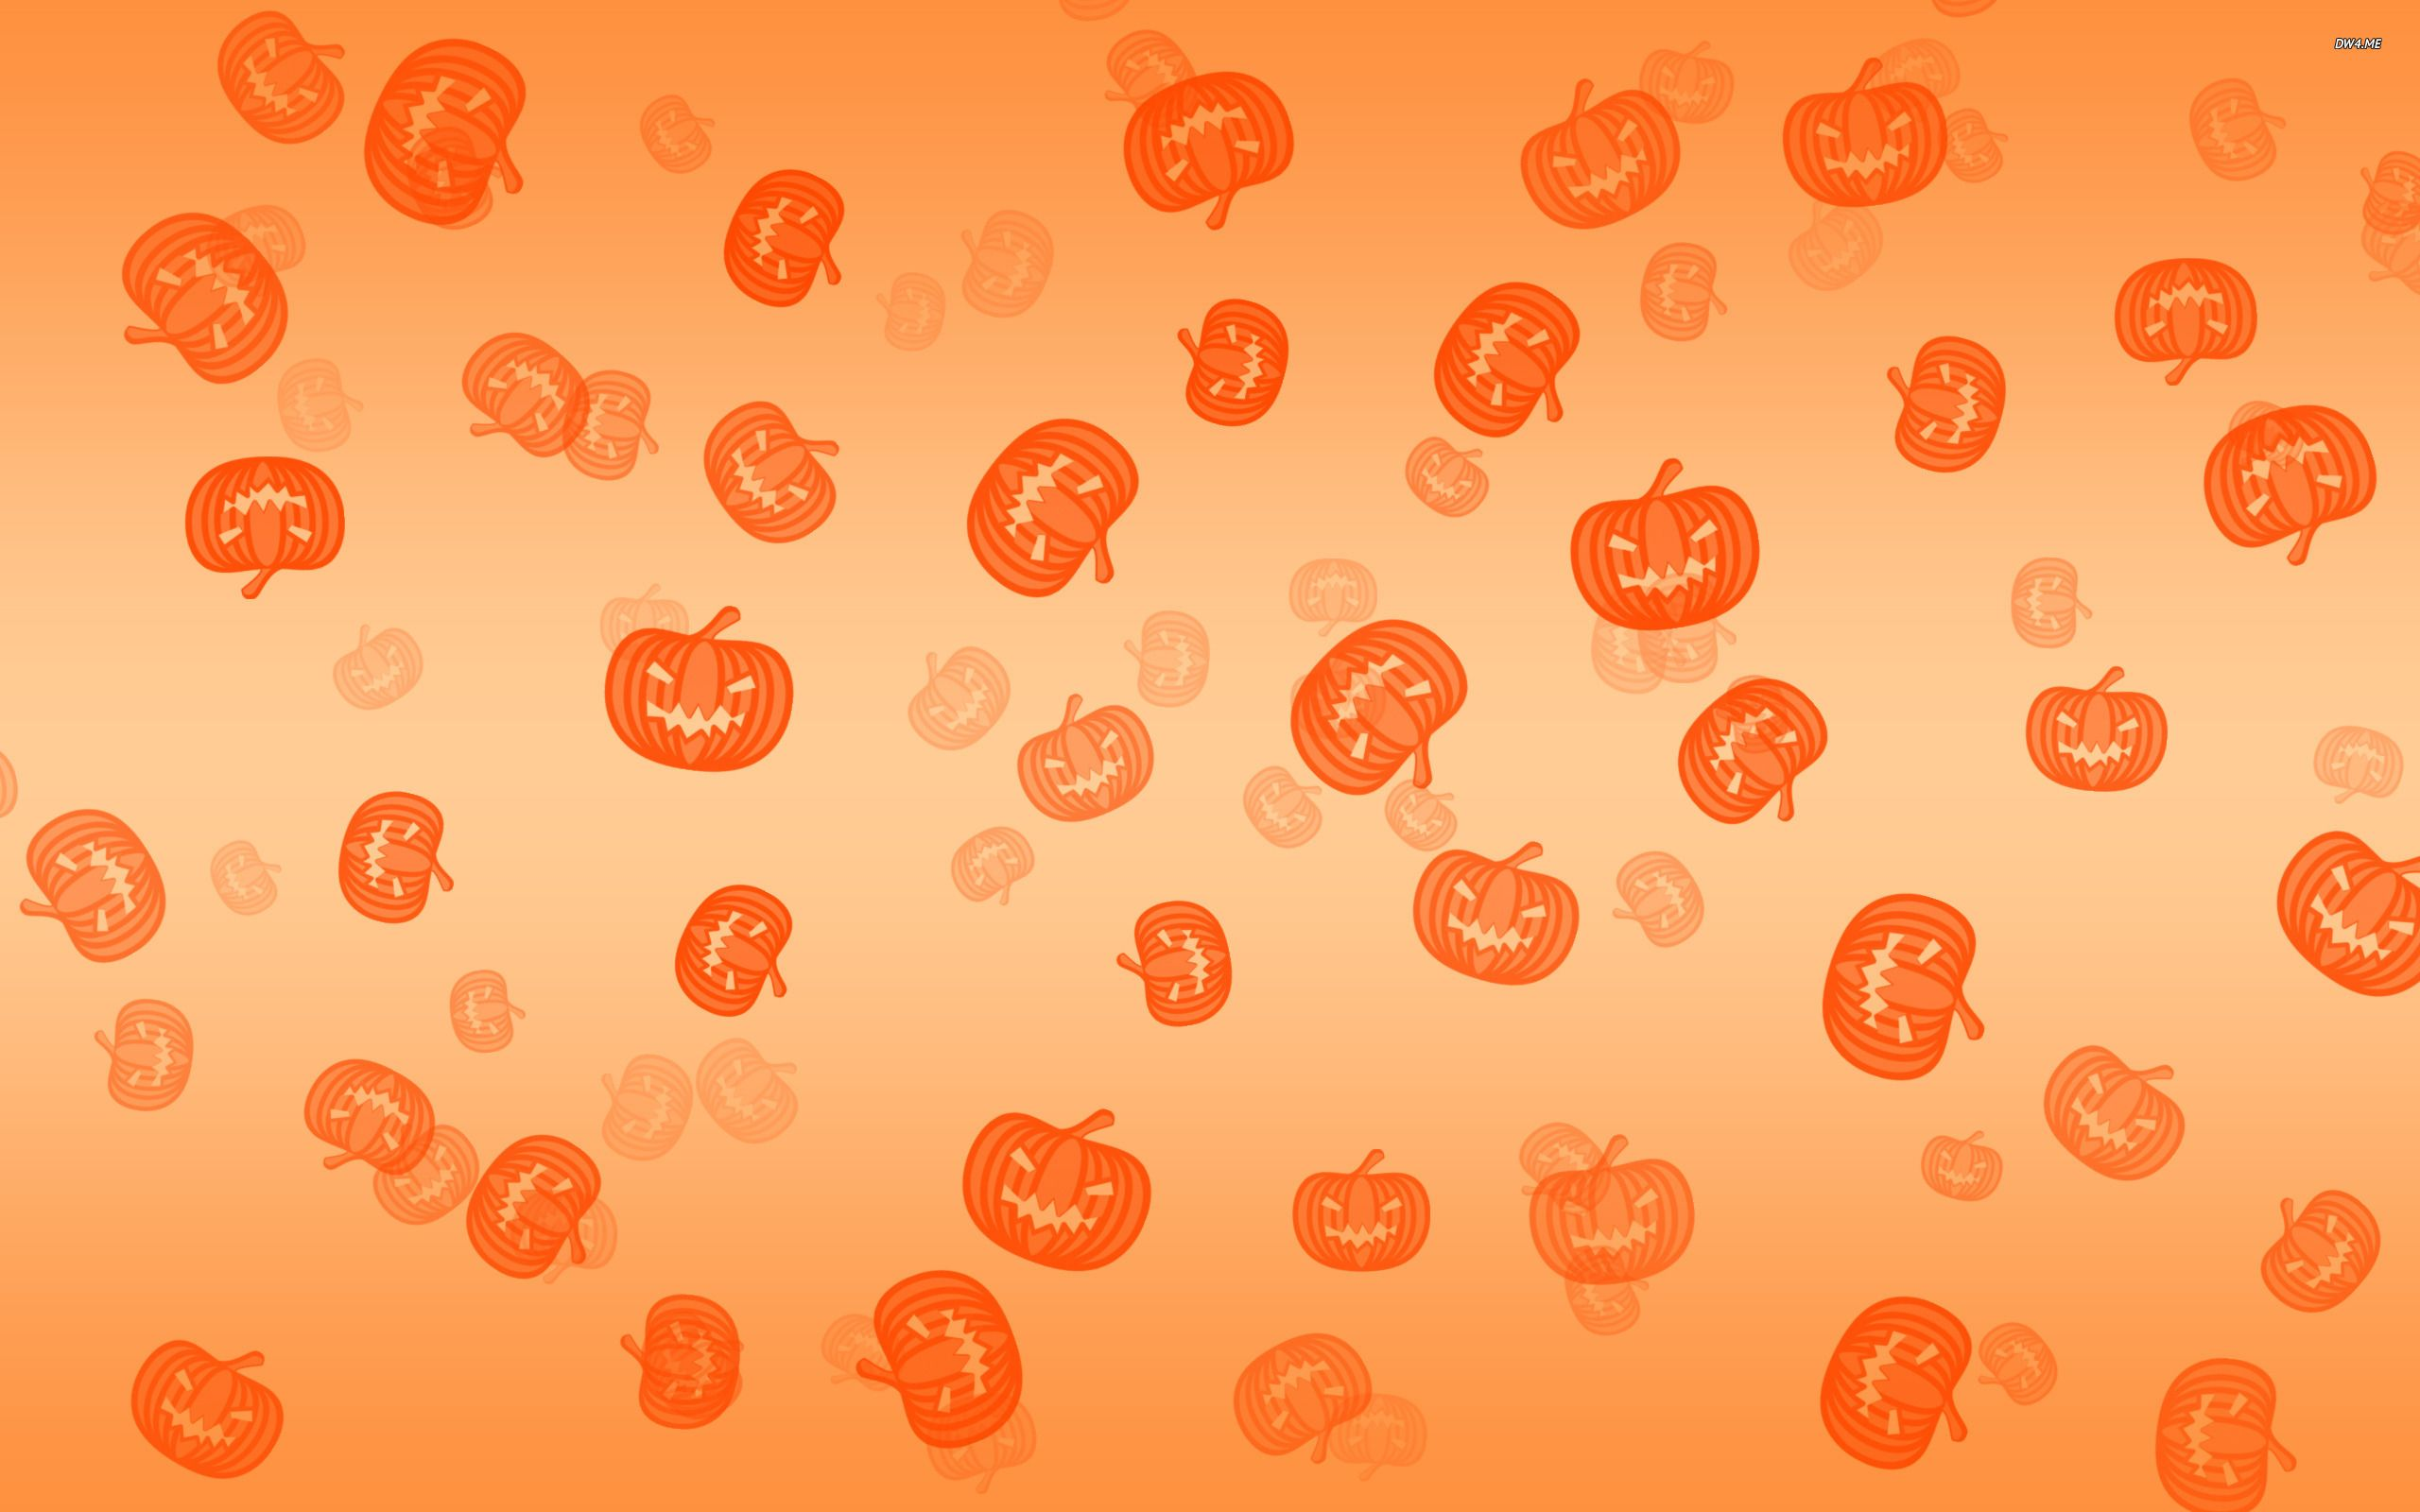 Simple Wallpaper Halloween Grunge - a62cf80dcb85b7c6d915ffbcc4a6b26b  Perfect Image Reference_44654.jpg